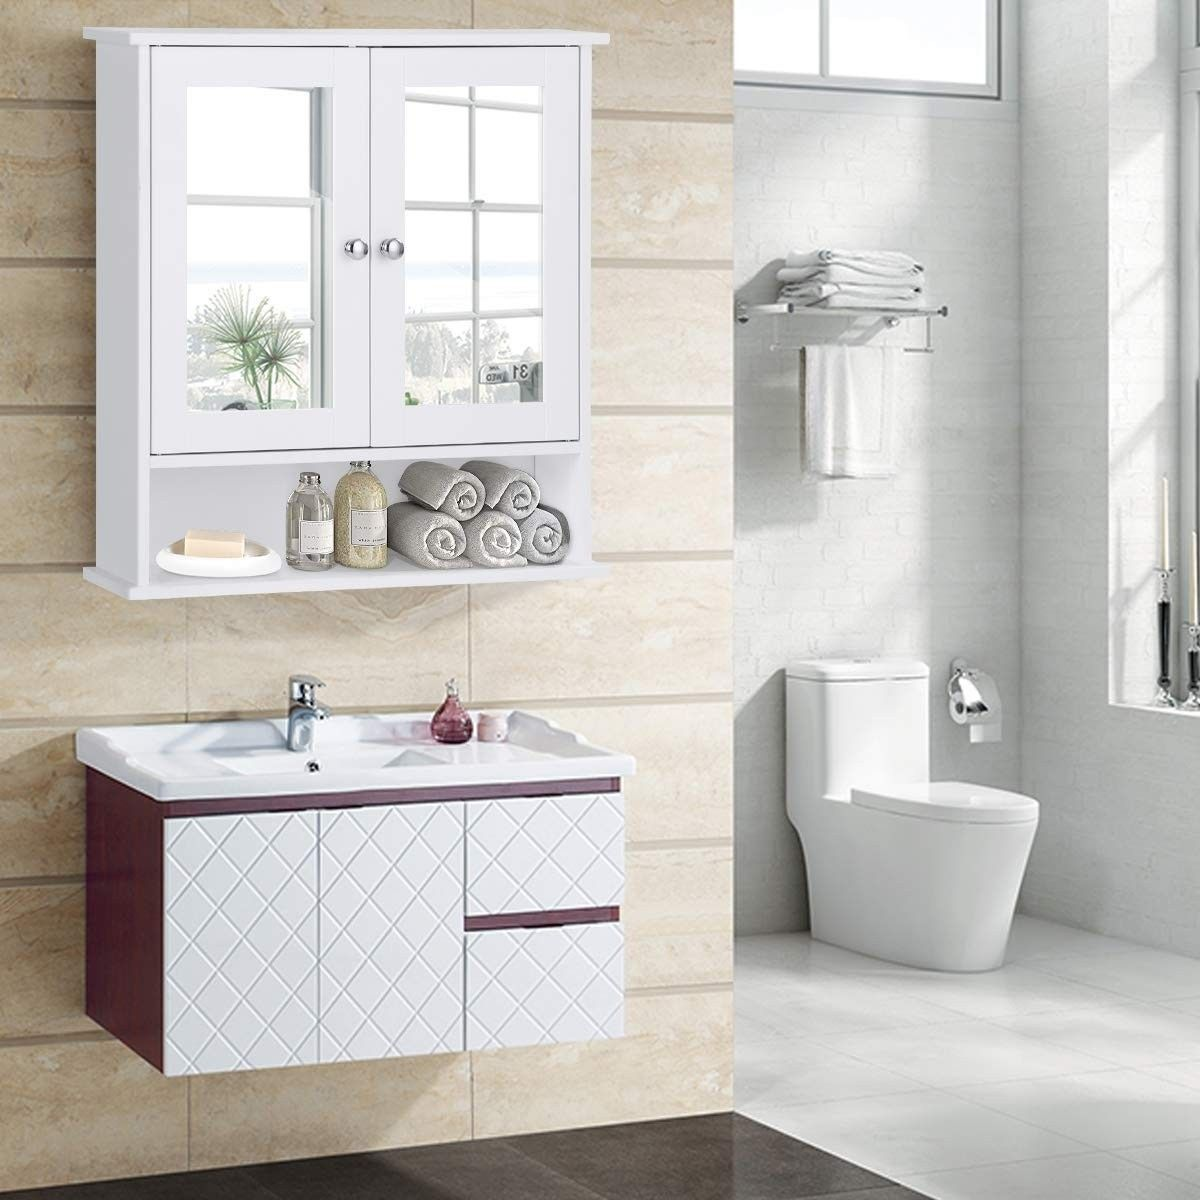 Bathroom Wall Cabinet With Double Mirror Doors 55 95 Free Shipping This Stunning Double Door Mirrored Wall Bathroom Wall Cabinets Bathroom Cabinets Cabinet